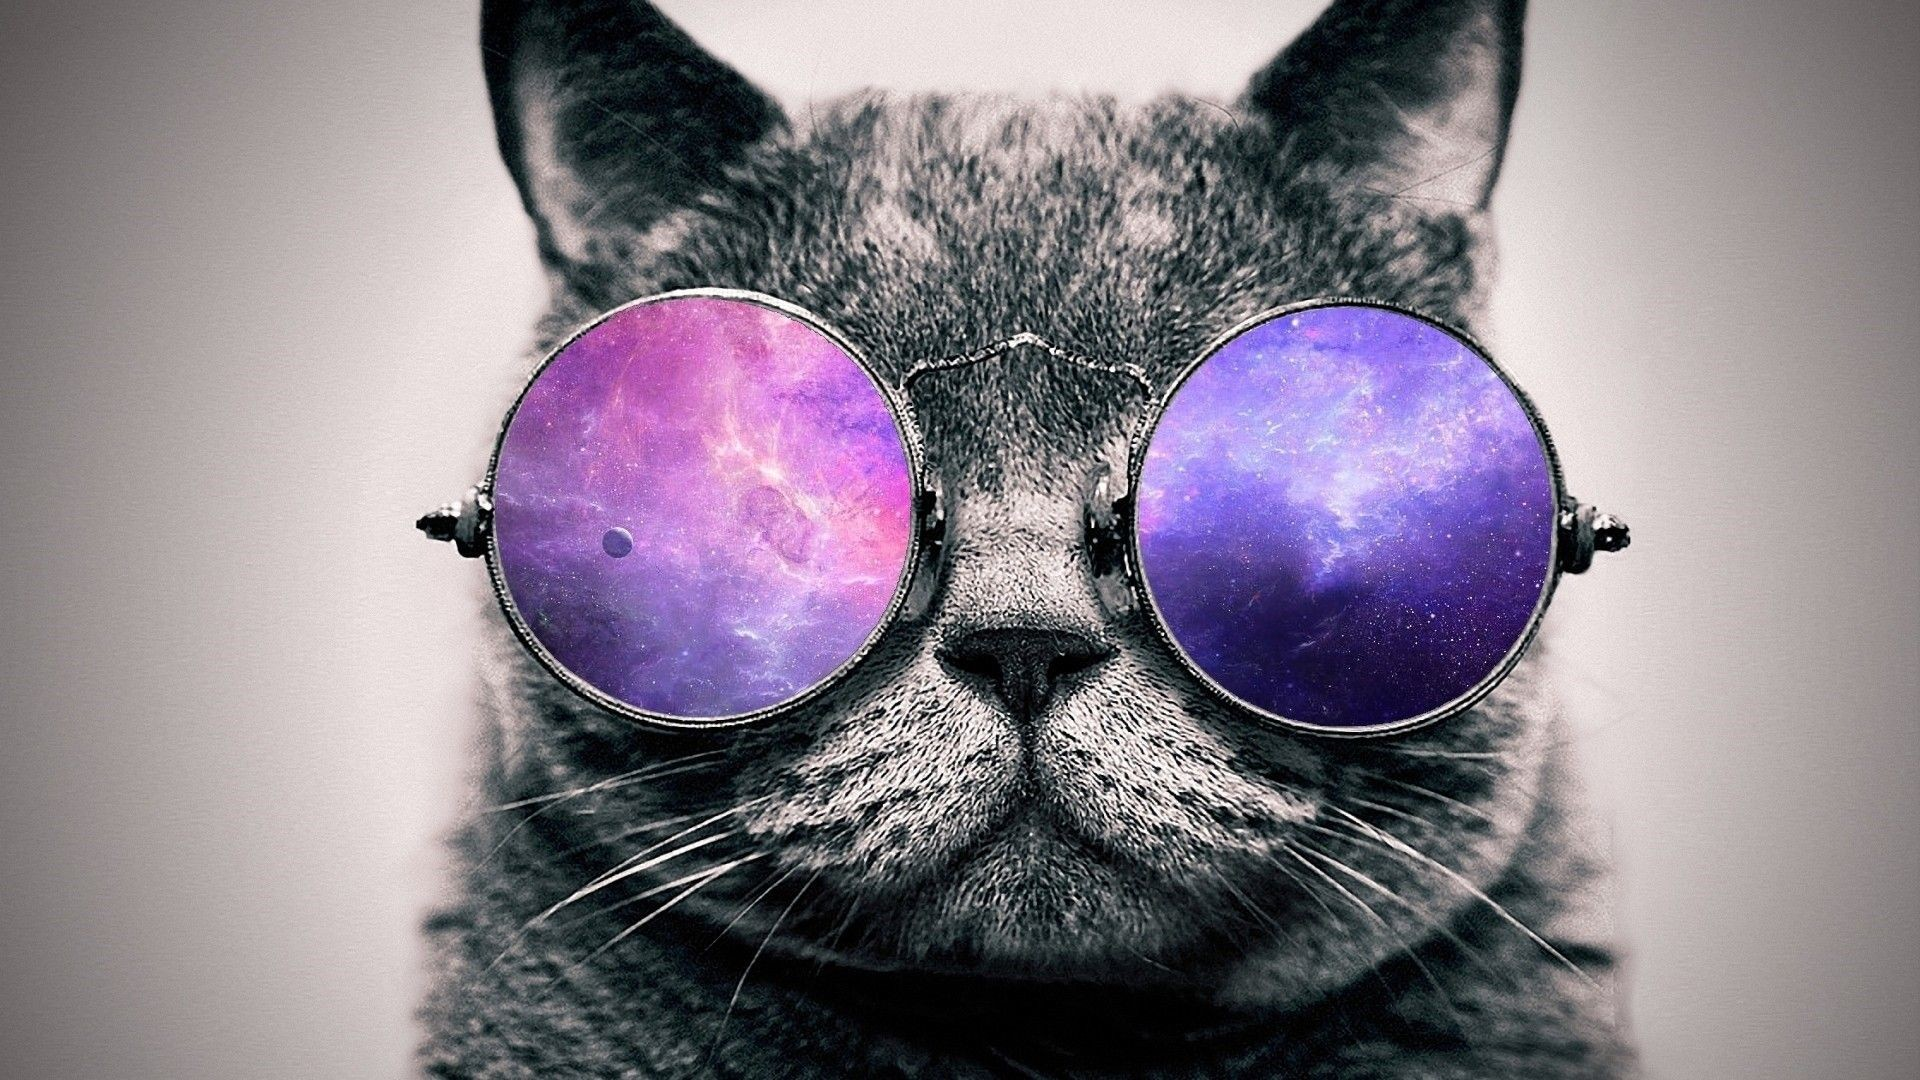 Res: 1920x1080, cat with sunglasses wallpaper #576052